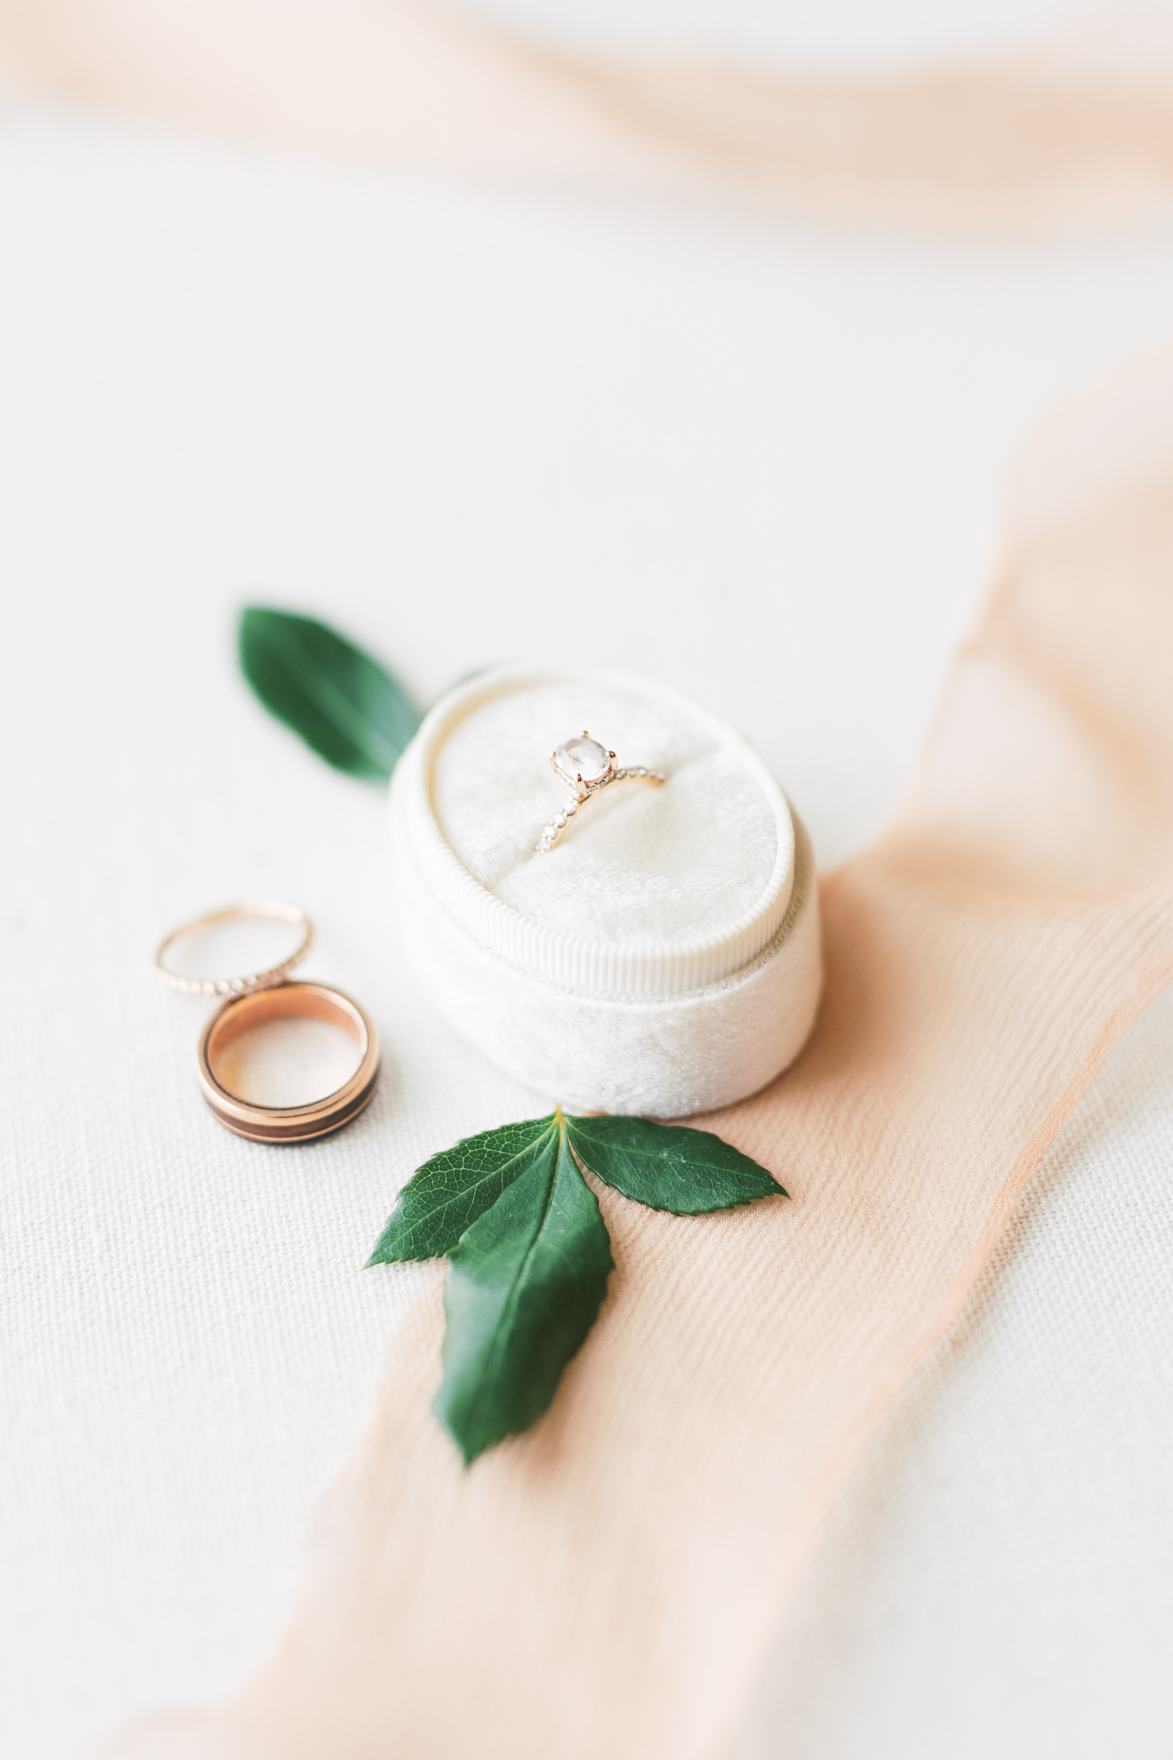 We simply adored this sustainable white sapphire ring from Dani and Missy's modern and elegant old city Philadelphia wedding at Power Plant Productions. Power Plant Production wedding photographer